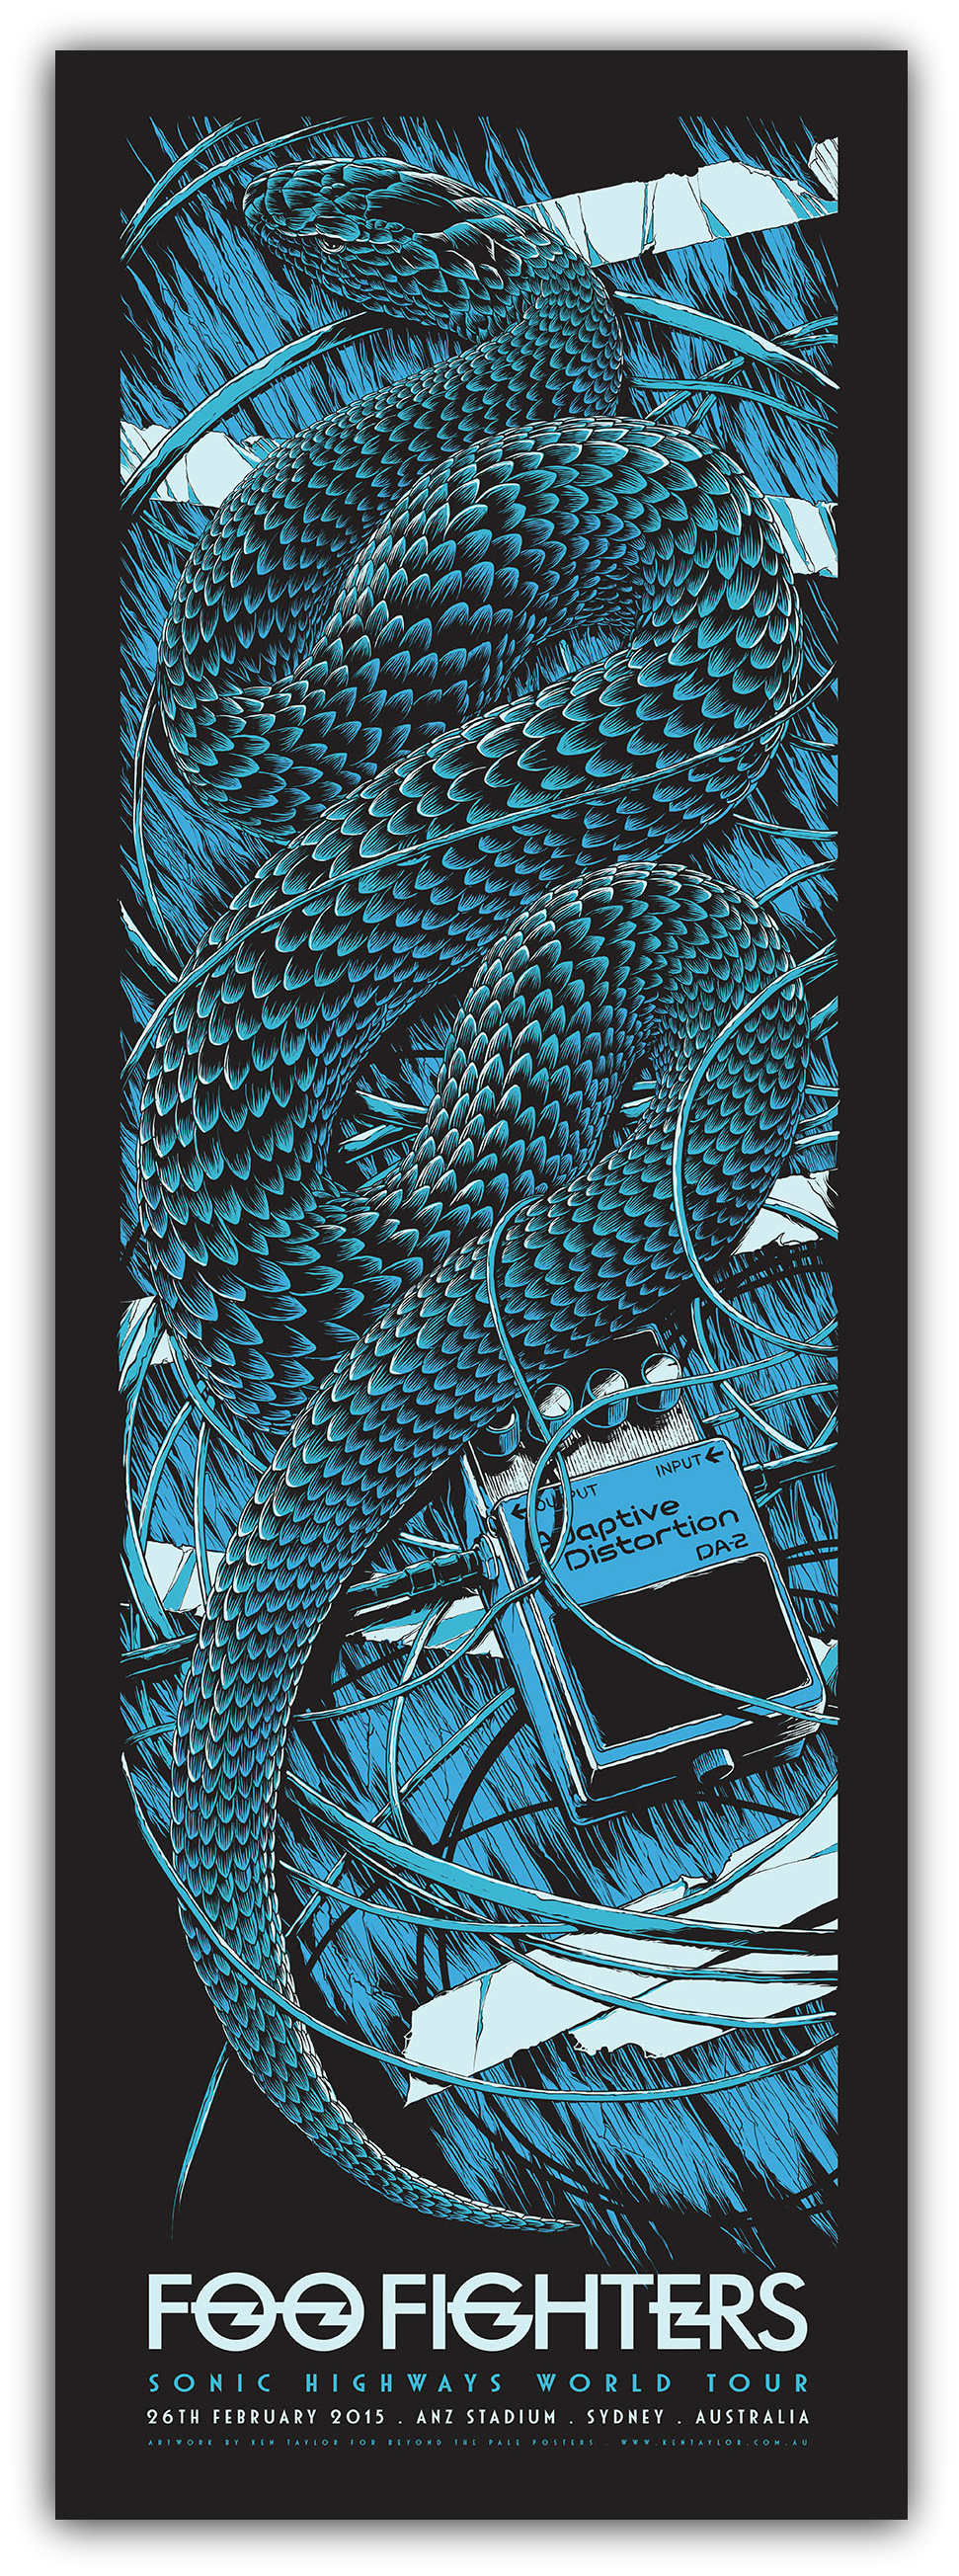 """Foo Fighters - OZ Tour 2015"" by Ken Taylor.  890 x 305mm Screenprint.  Ed of 350 S/N.  $45 (Sydney)"